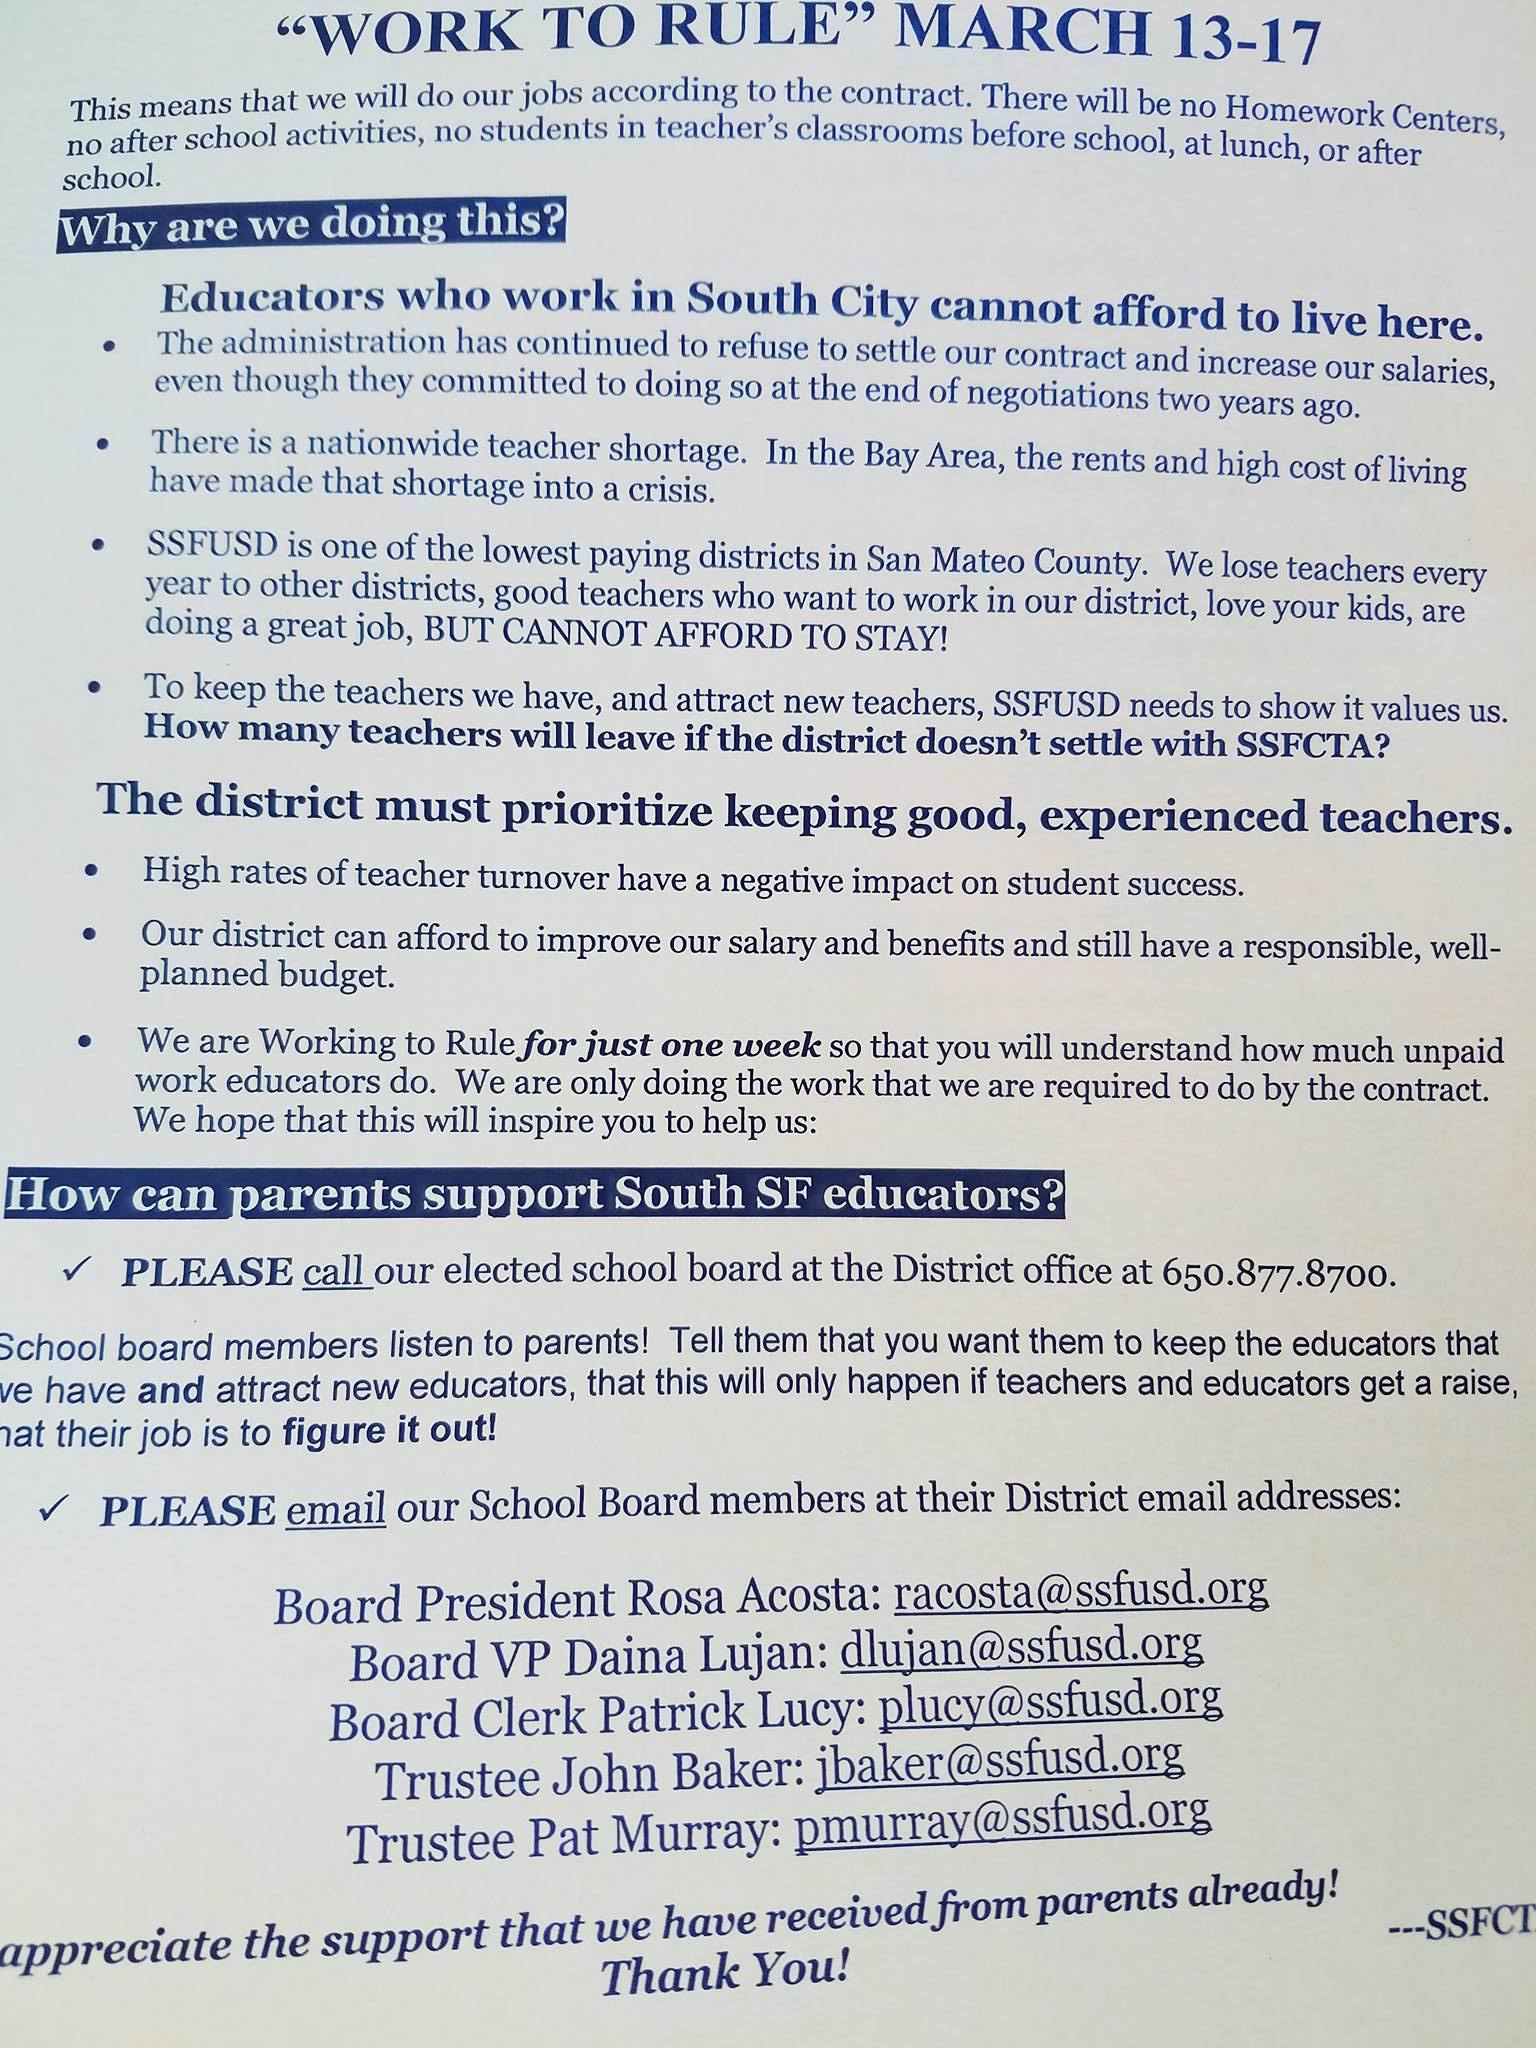 SSFUSD Teachers Demand Raises in the 'Work to Rule' Campaign